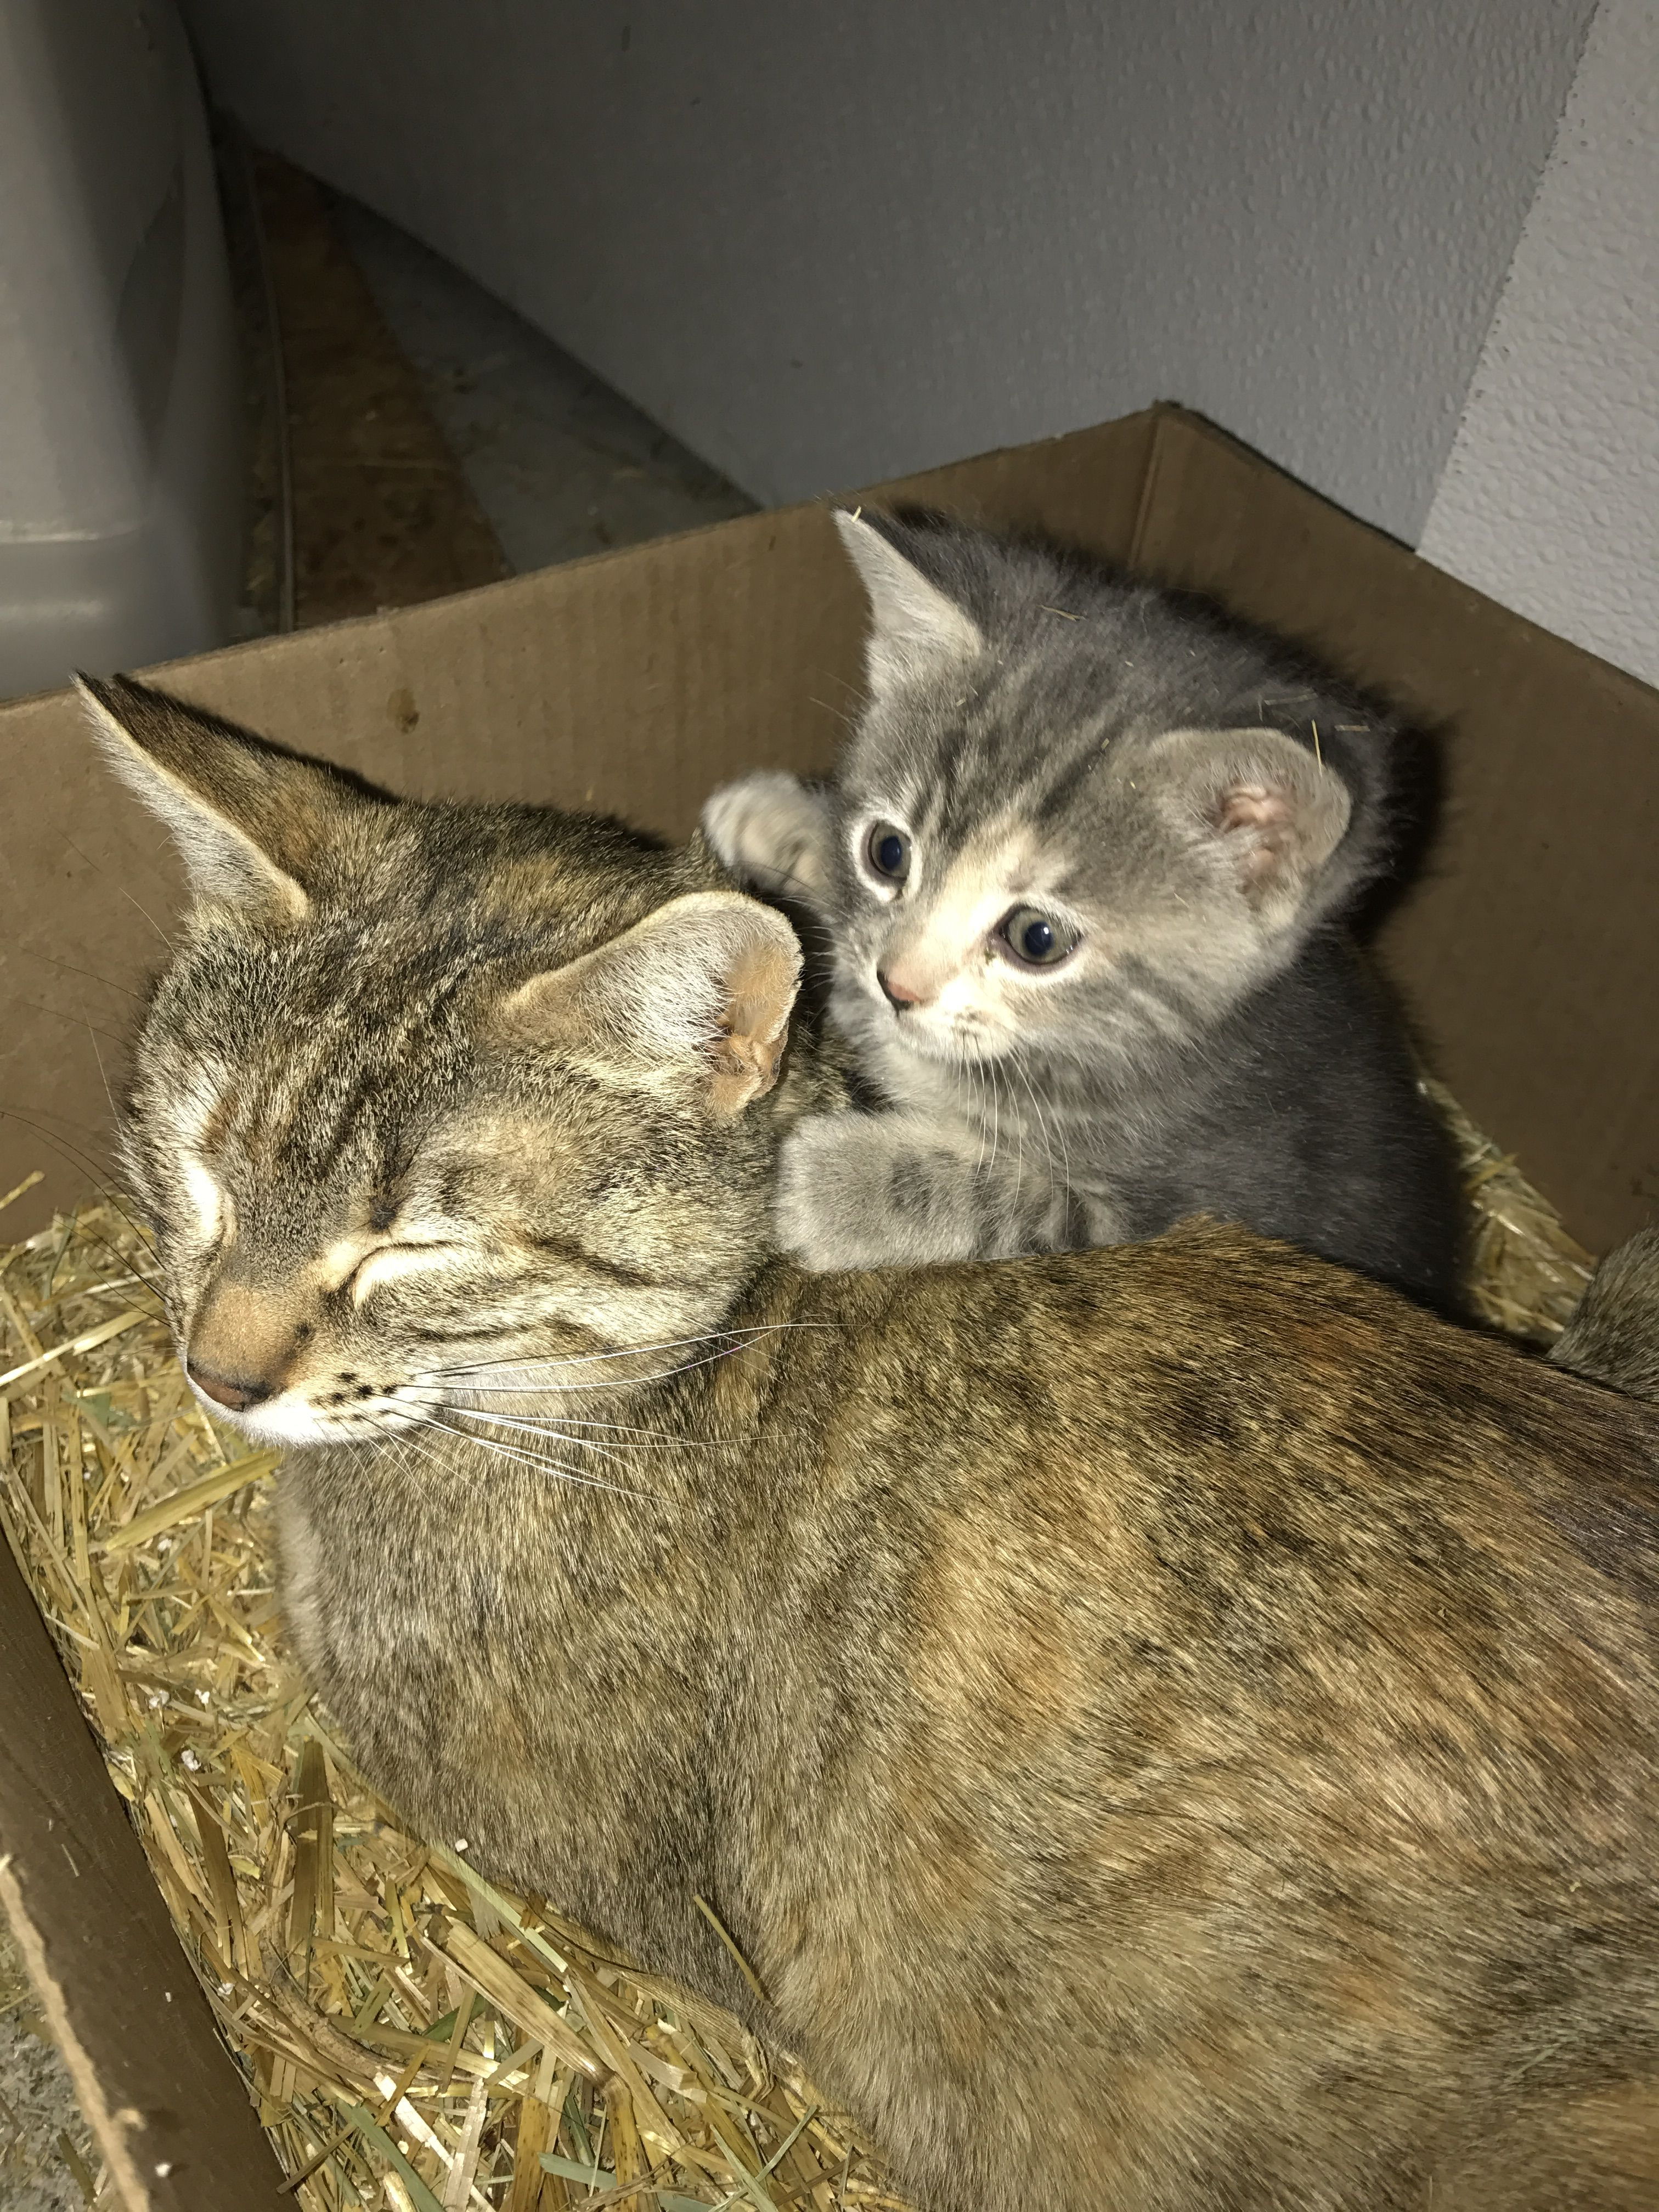 Our Kitten Marteeka With Her Mom Girlfriend Marteeka Our Kitten First Shes Sour Then She S Sweet Kittens Cats Kittens Cats